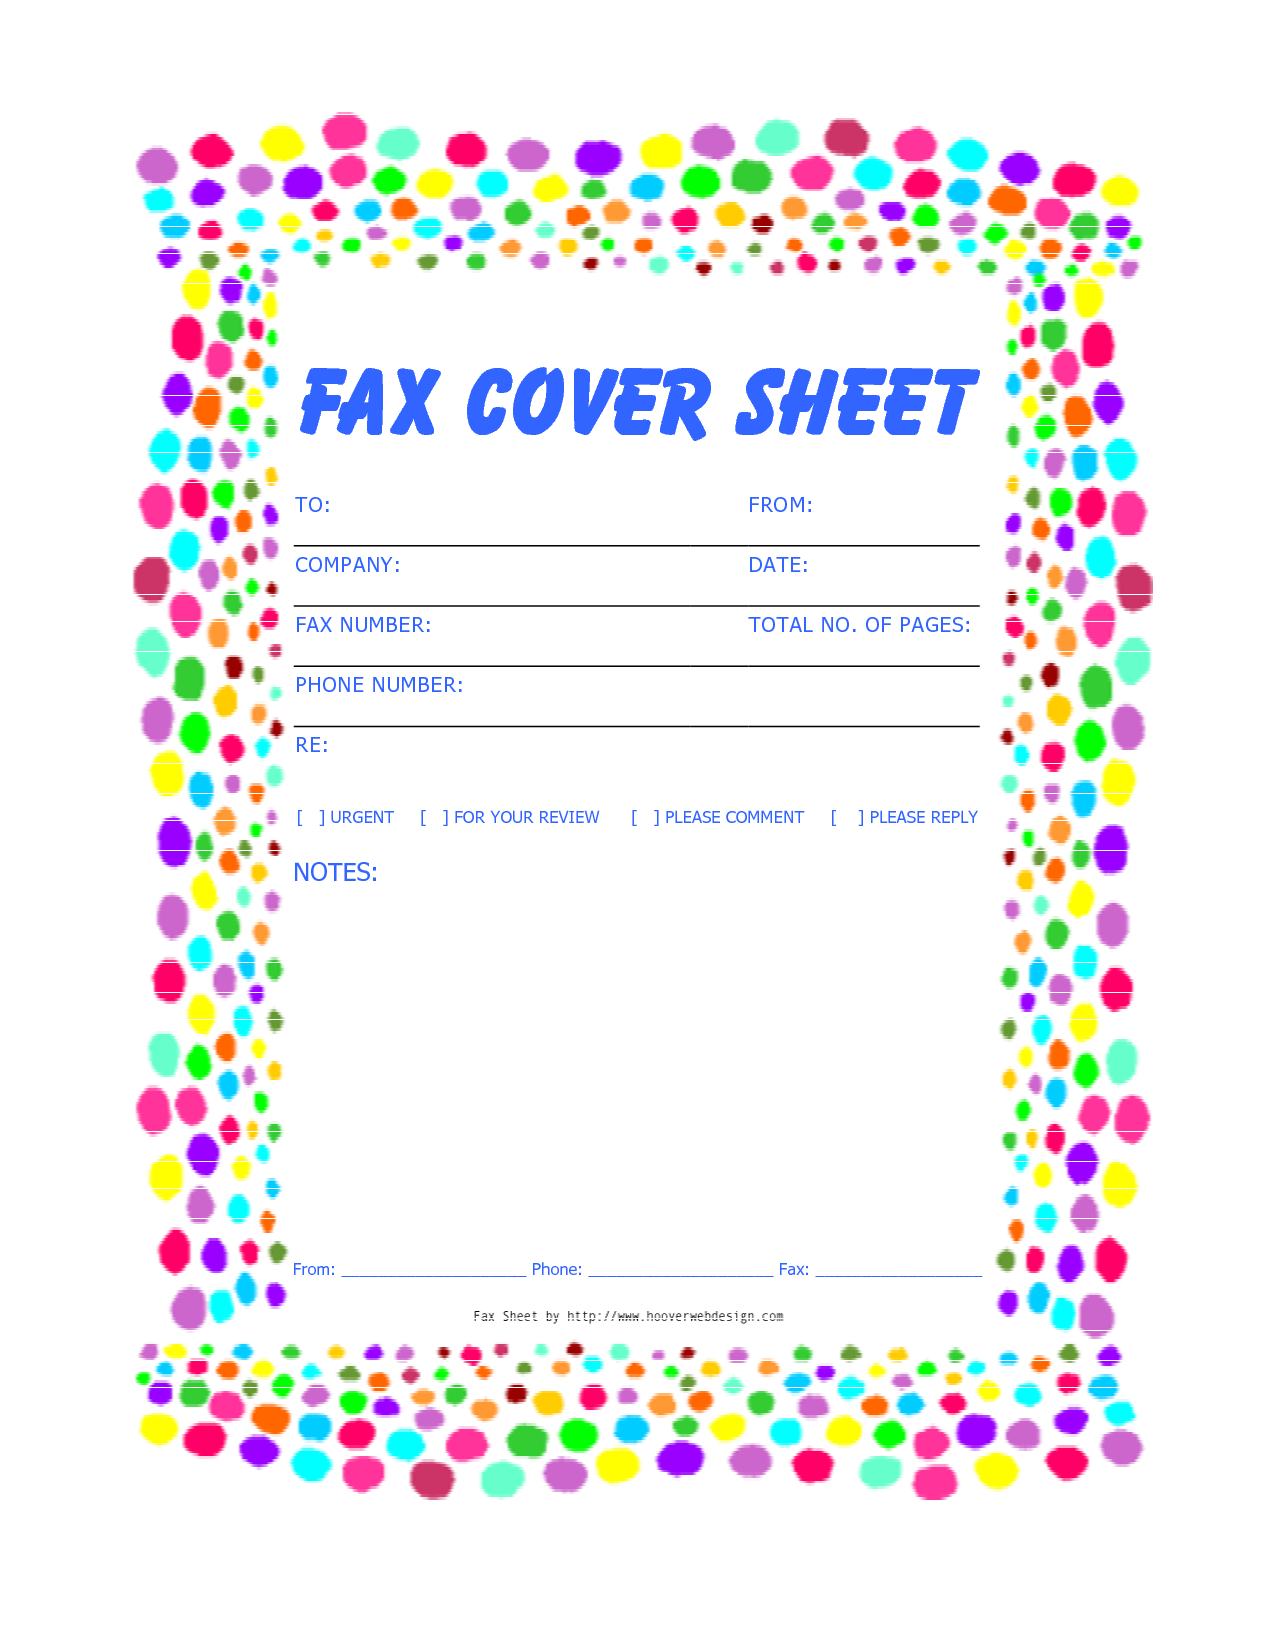 Free Printable Fax Cover Sheets | Free Printable Fax Cover Sheets Templates  Blank Fax Cover Sheet Free